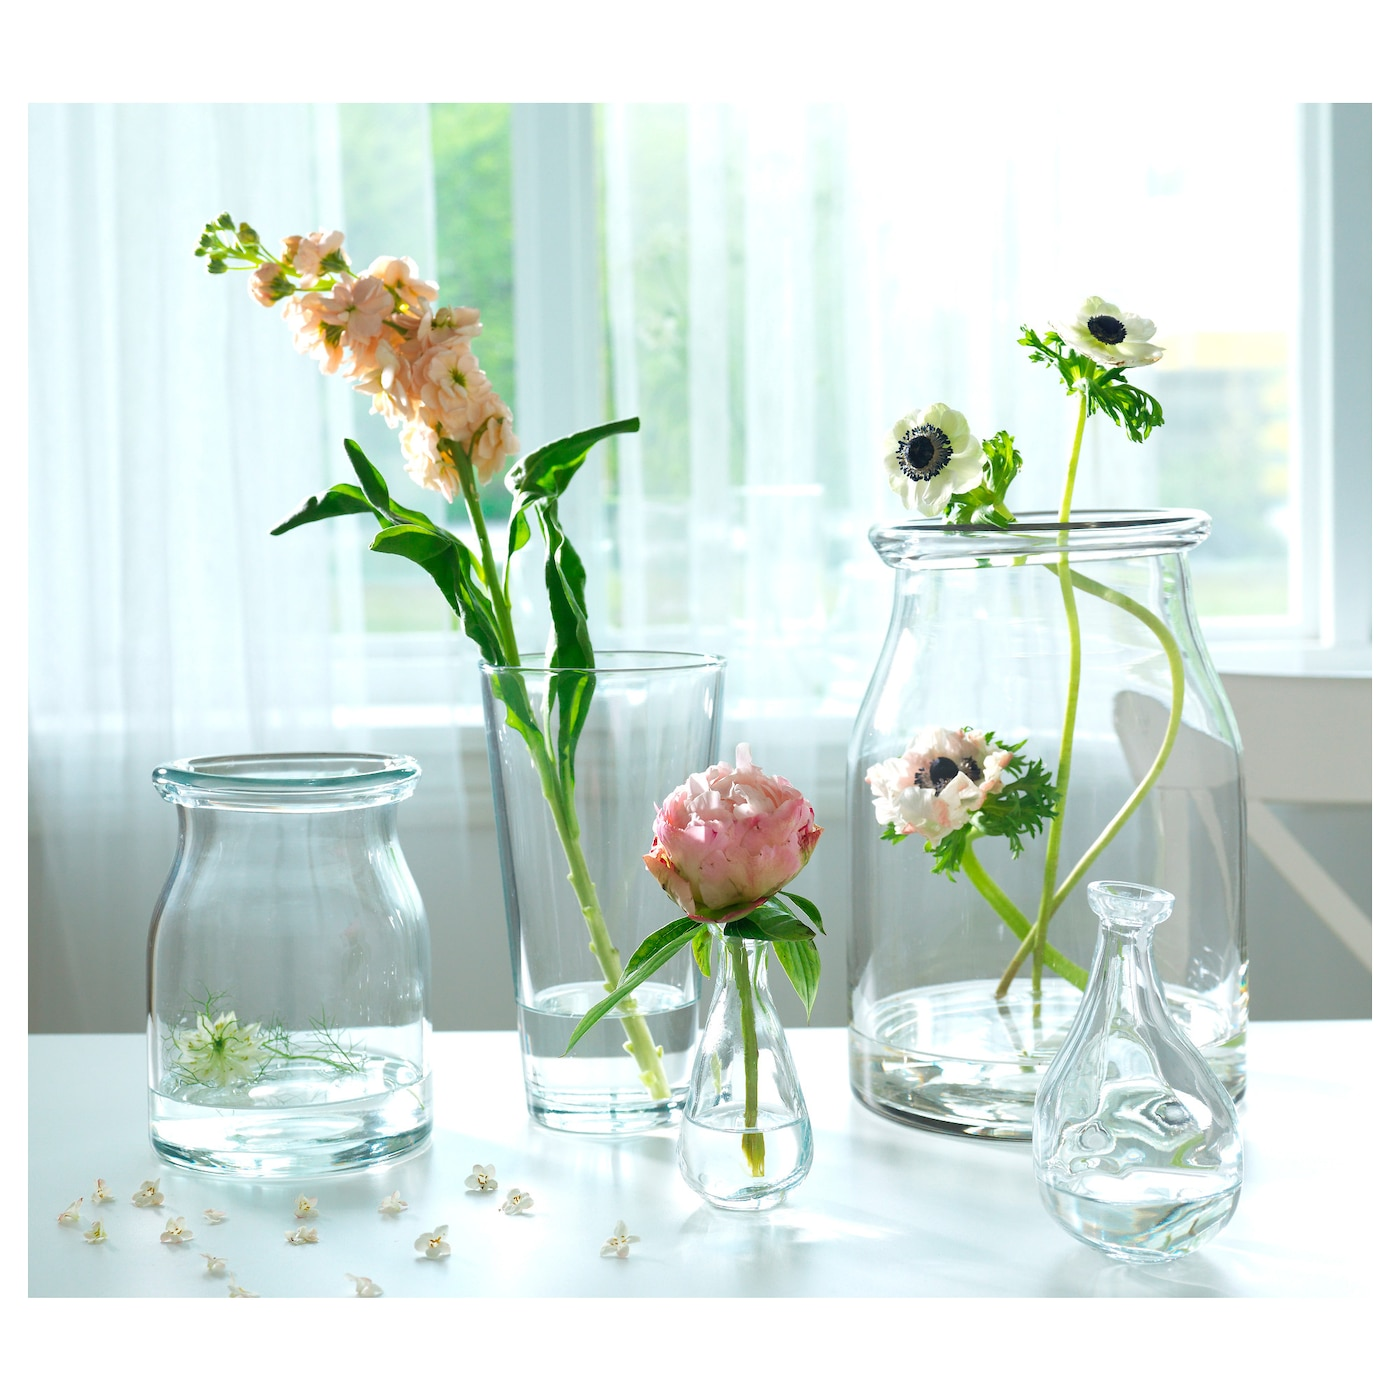 Design Ikea Vases vase clear glass 29 cm ikea the is mouth blown by a skilled craftsperson